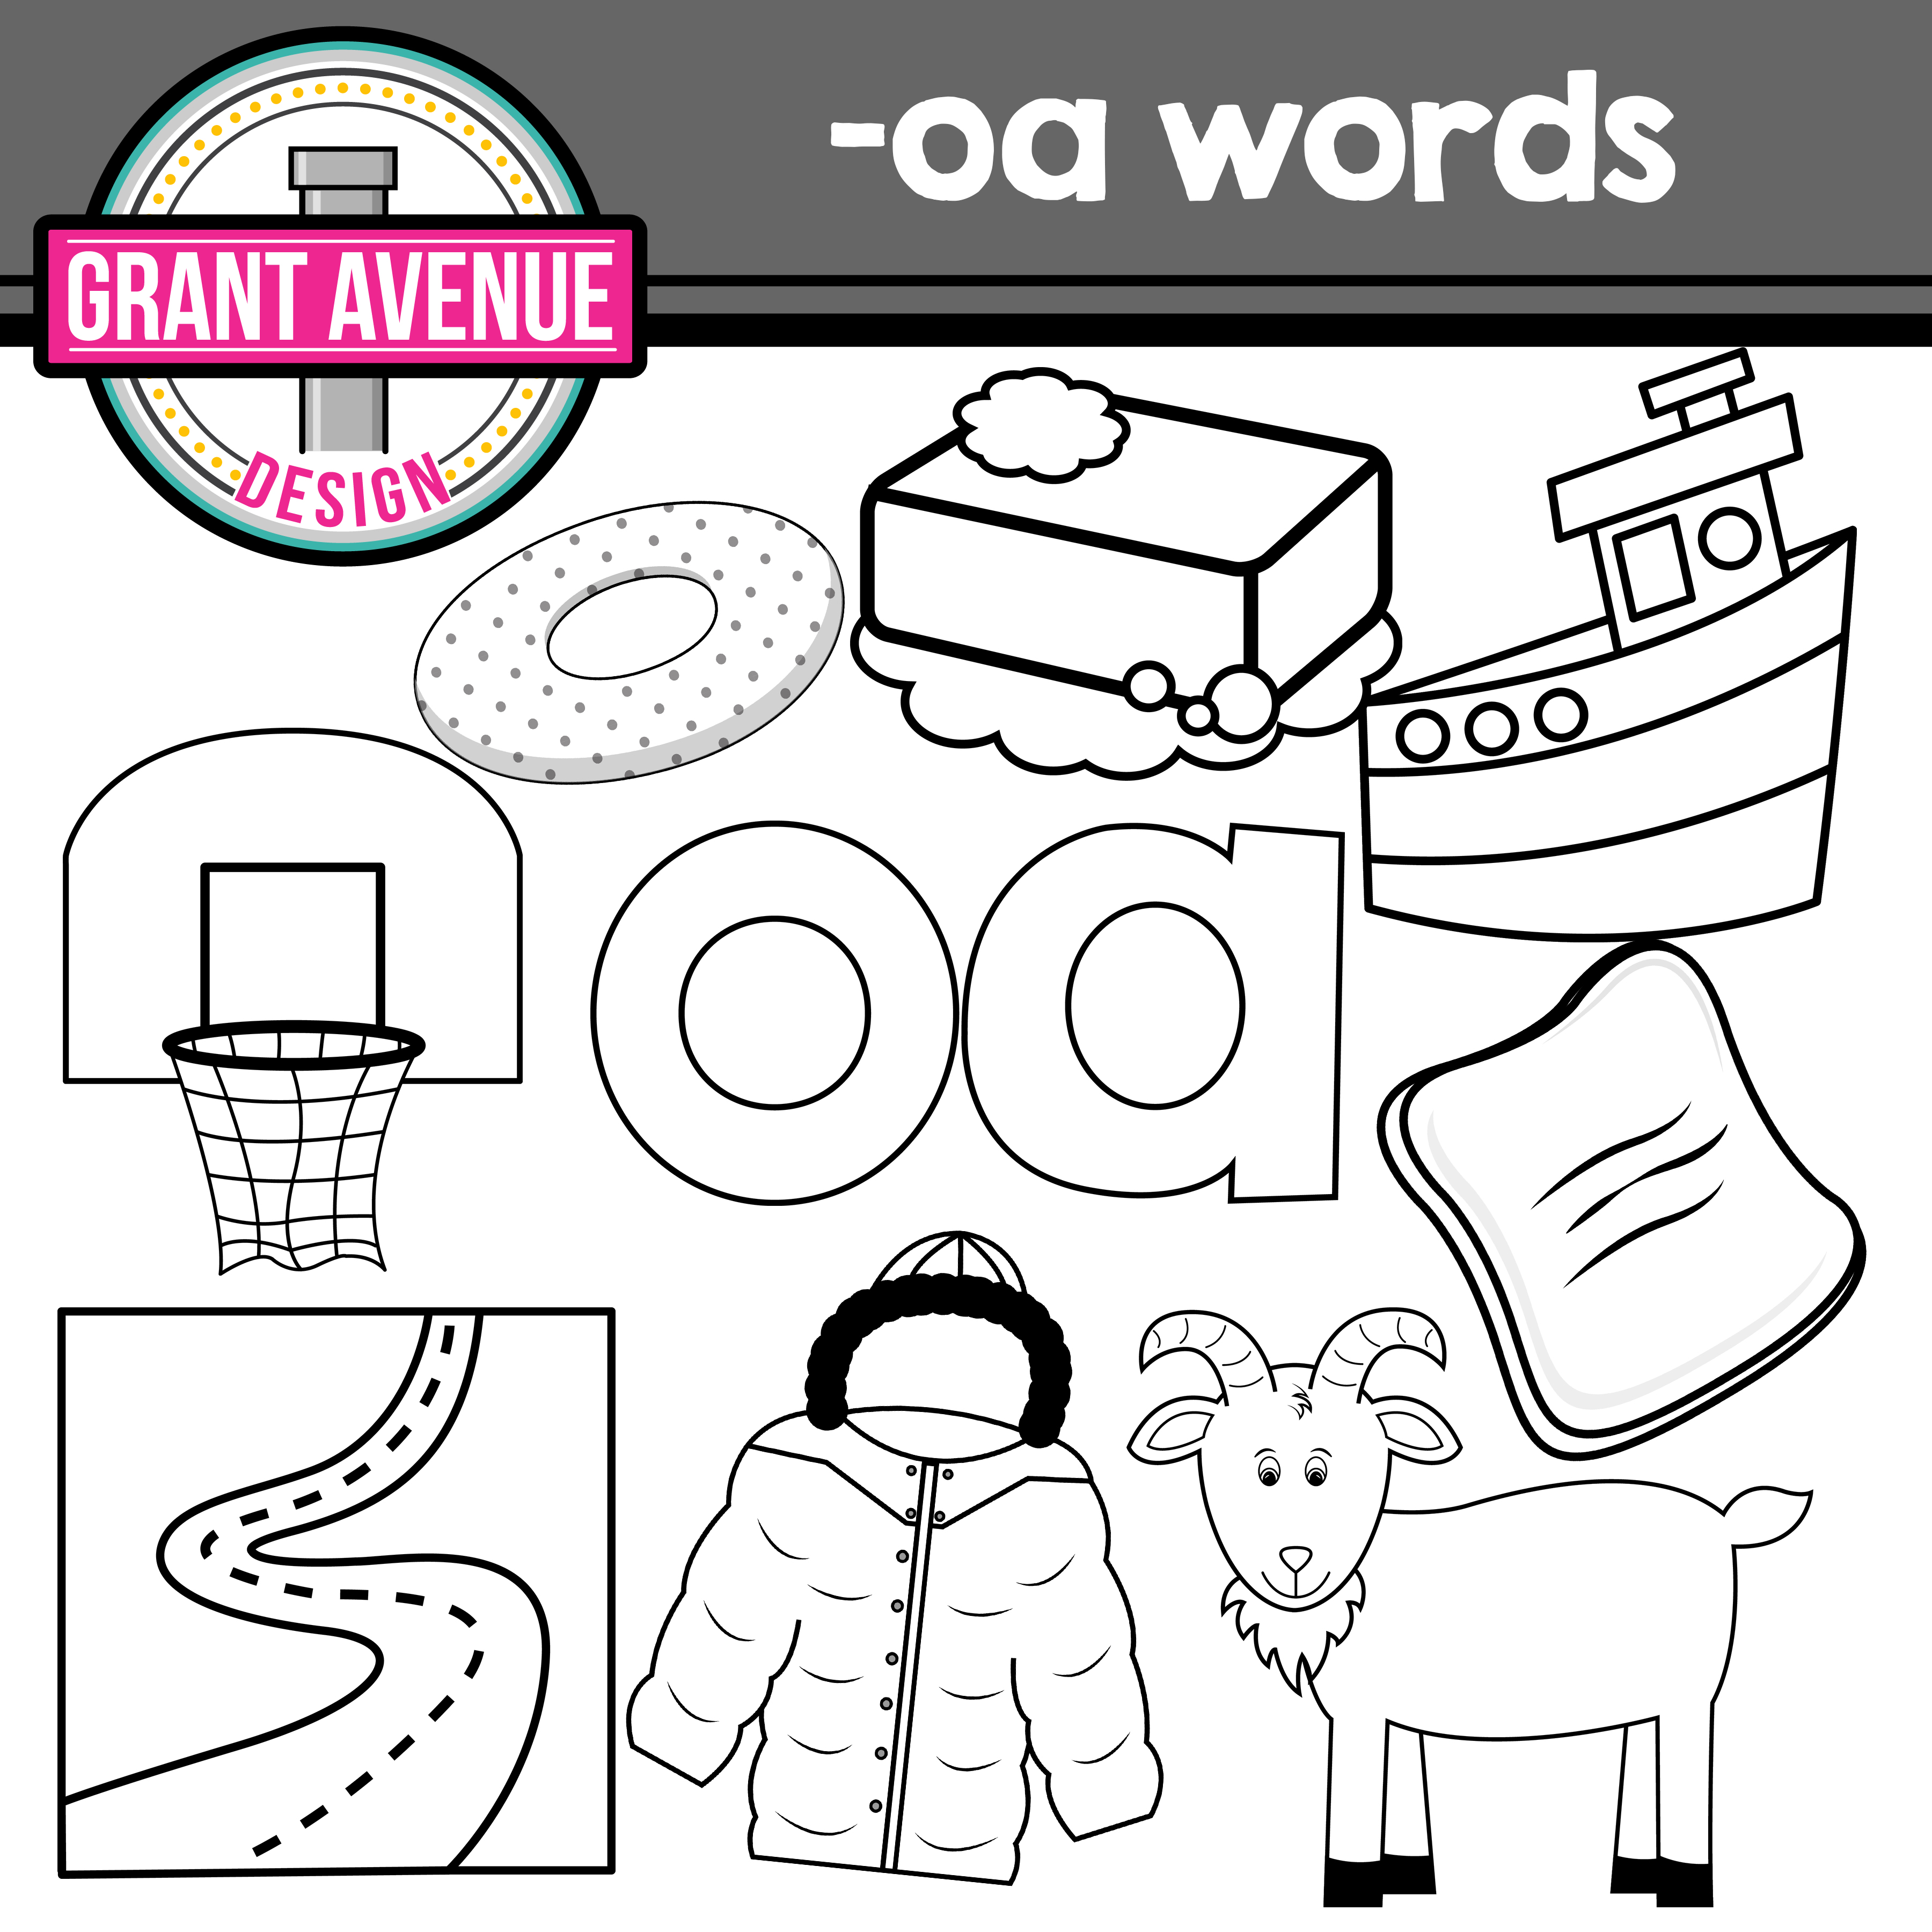 Free Oa Cliparts Download Free Clip Art Free Clip Art On Clipart Library